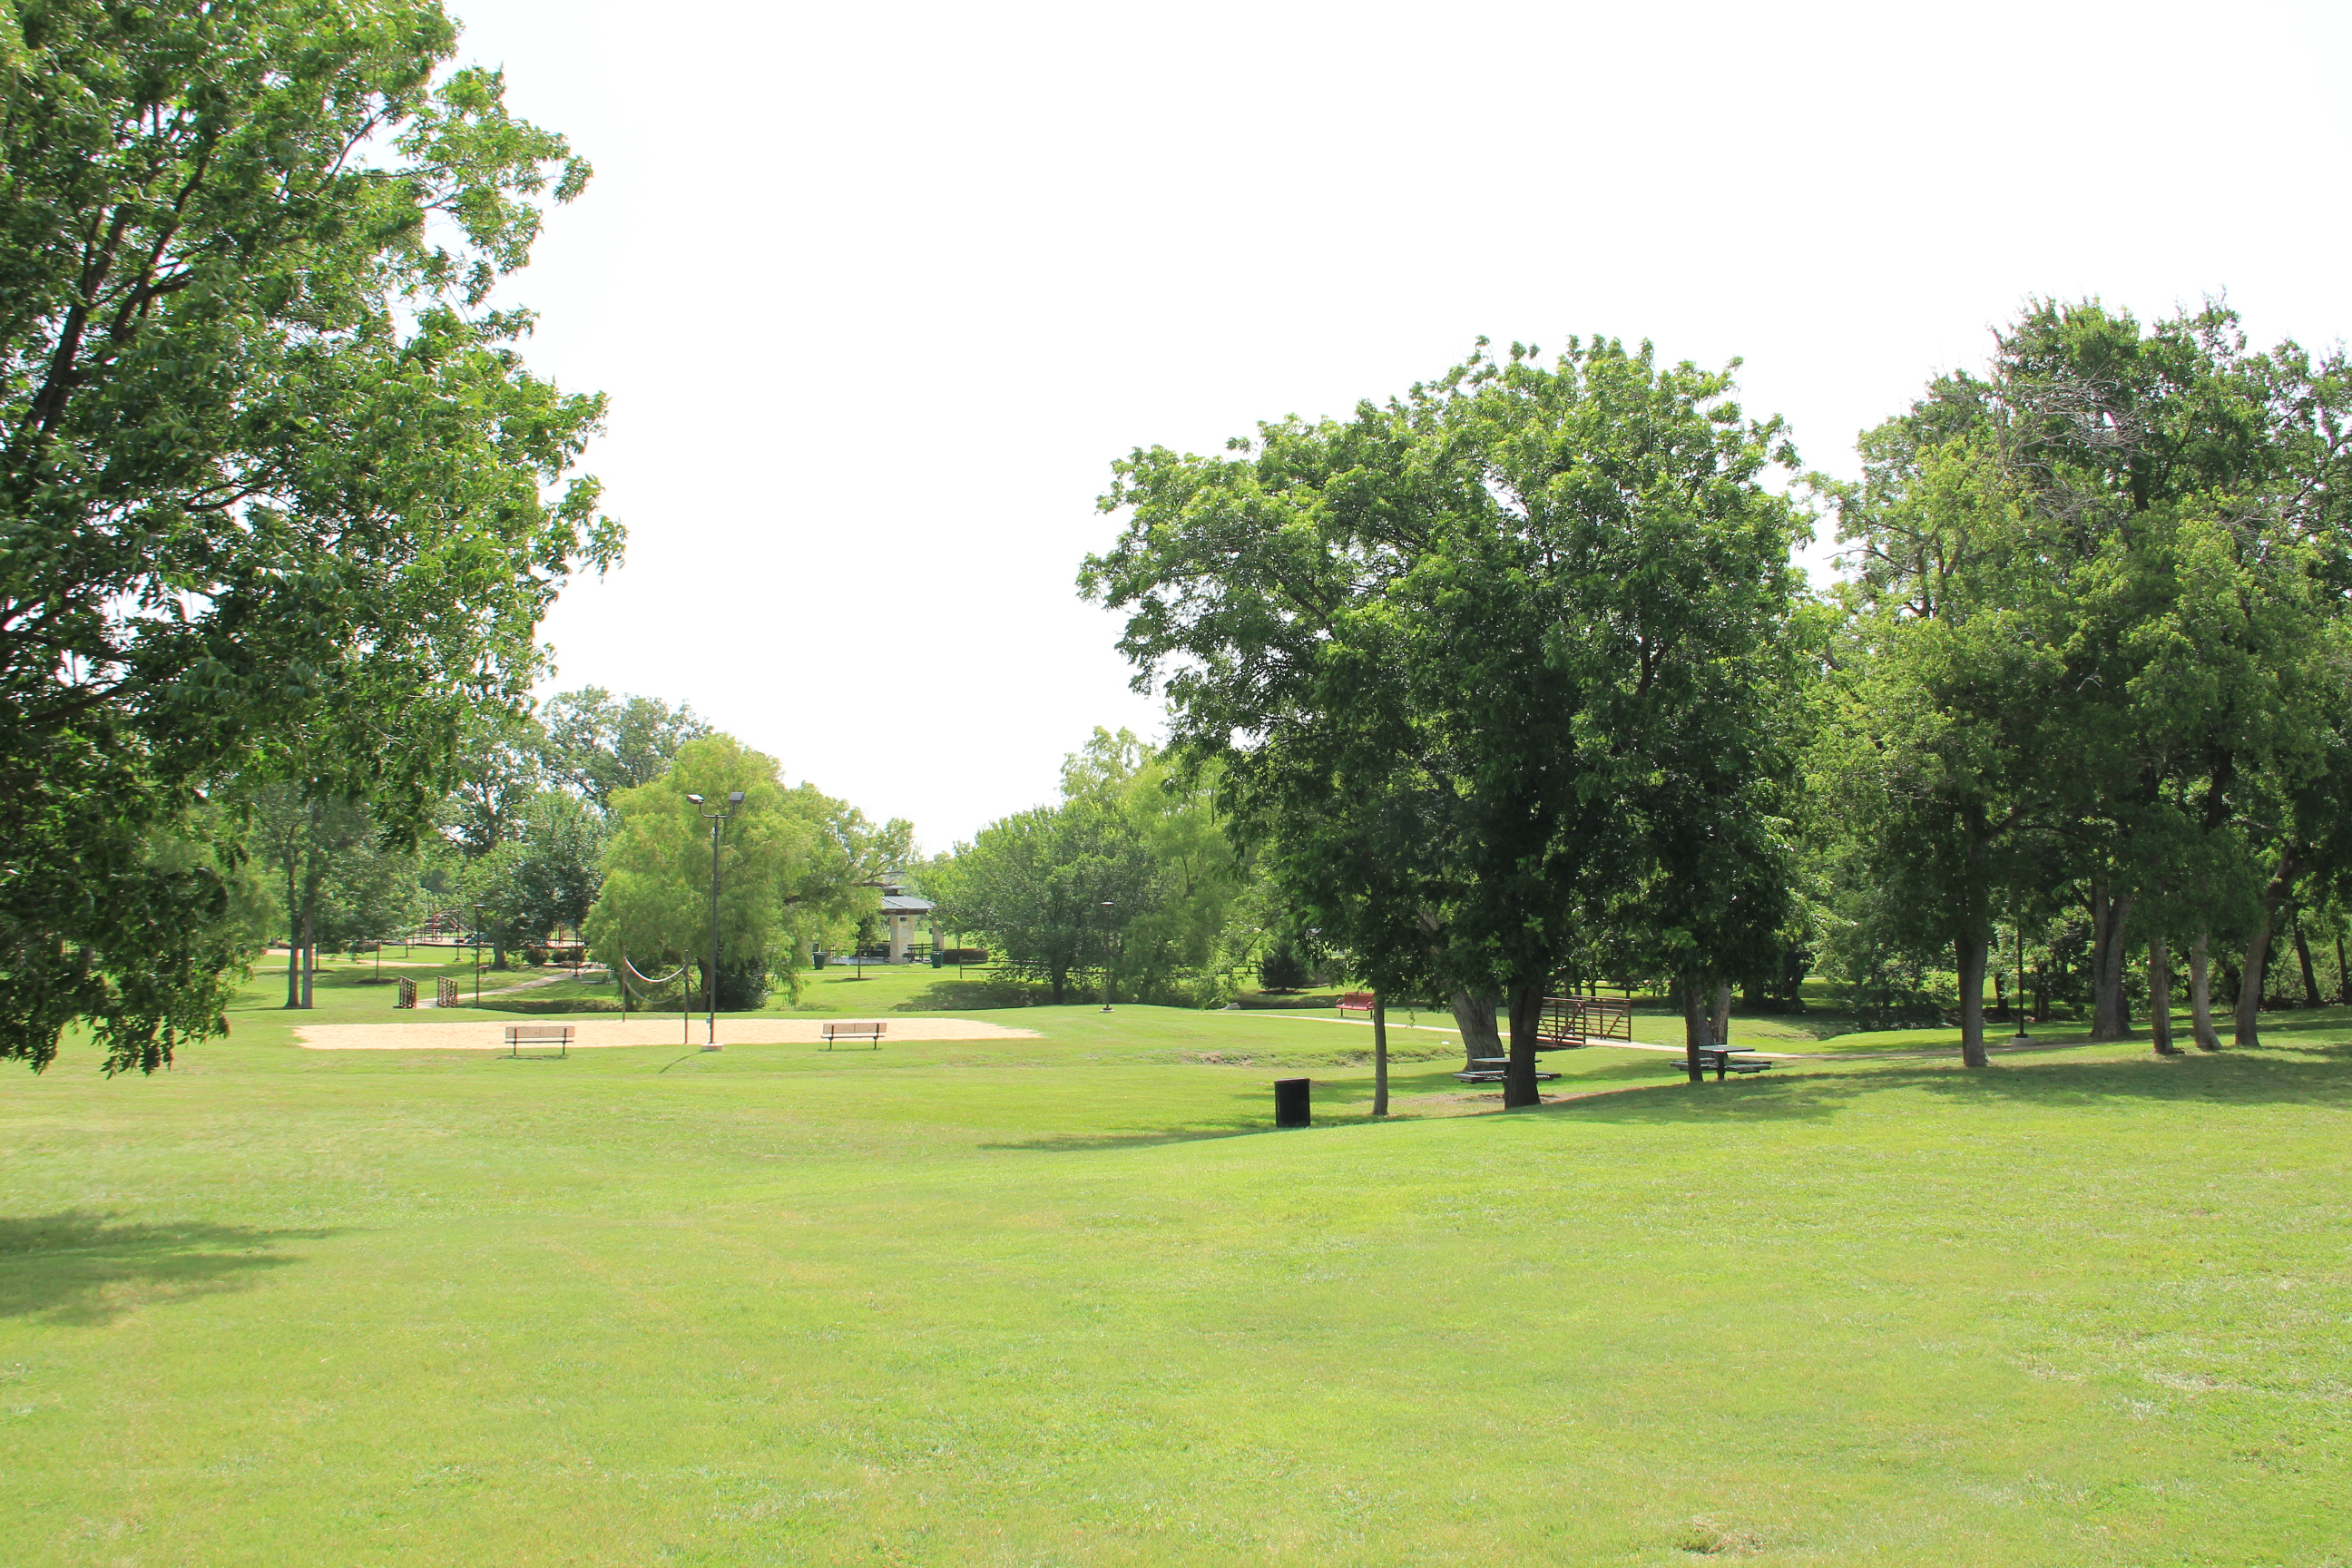 Meadows at Chandler Creek - Amenity Centers and Parks (3)